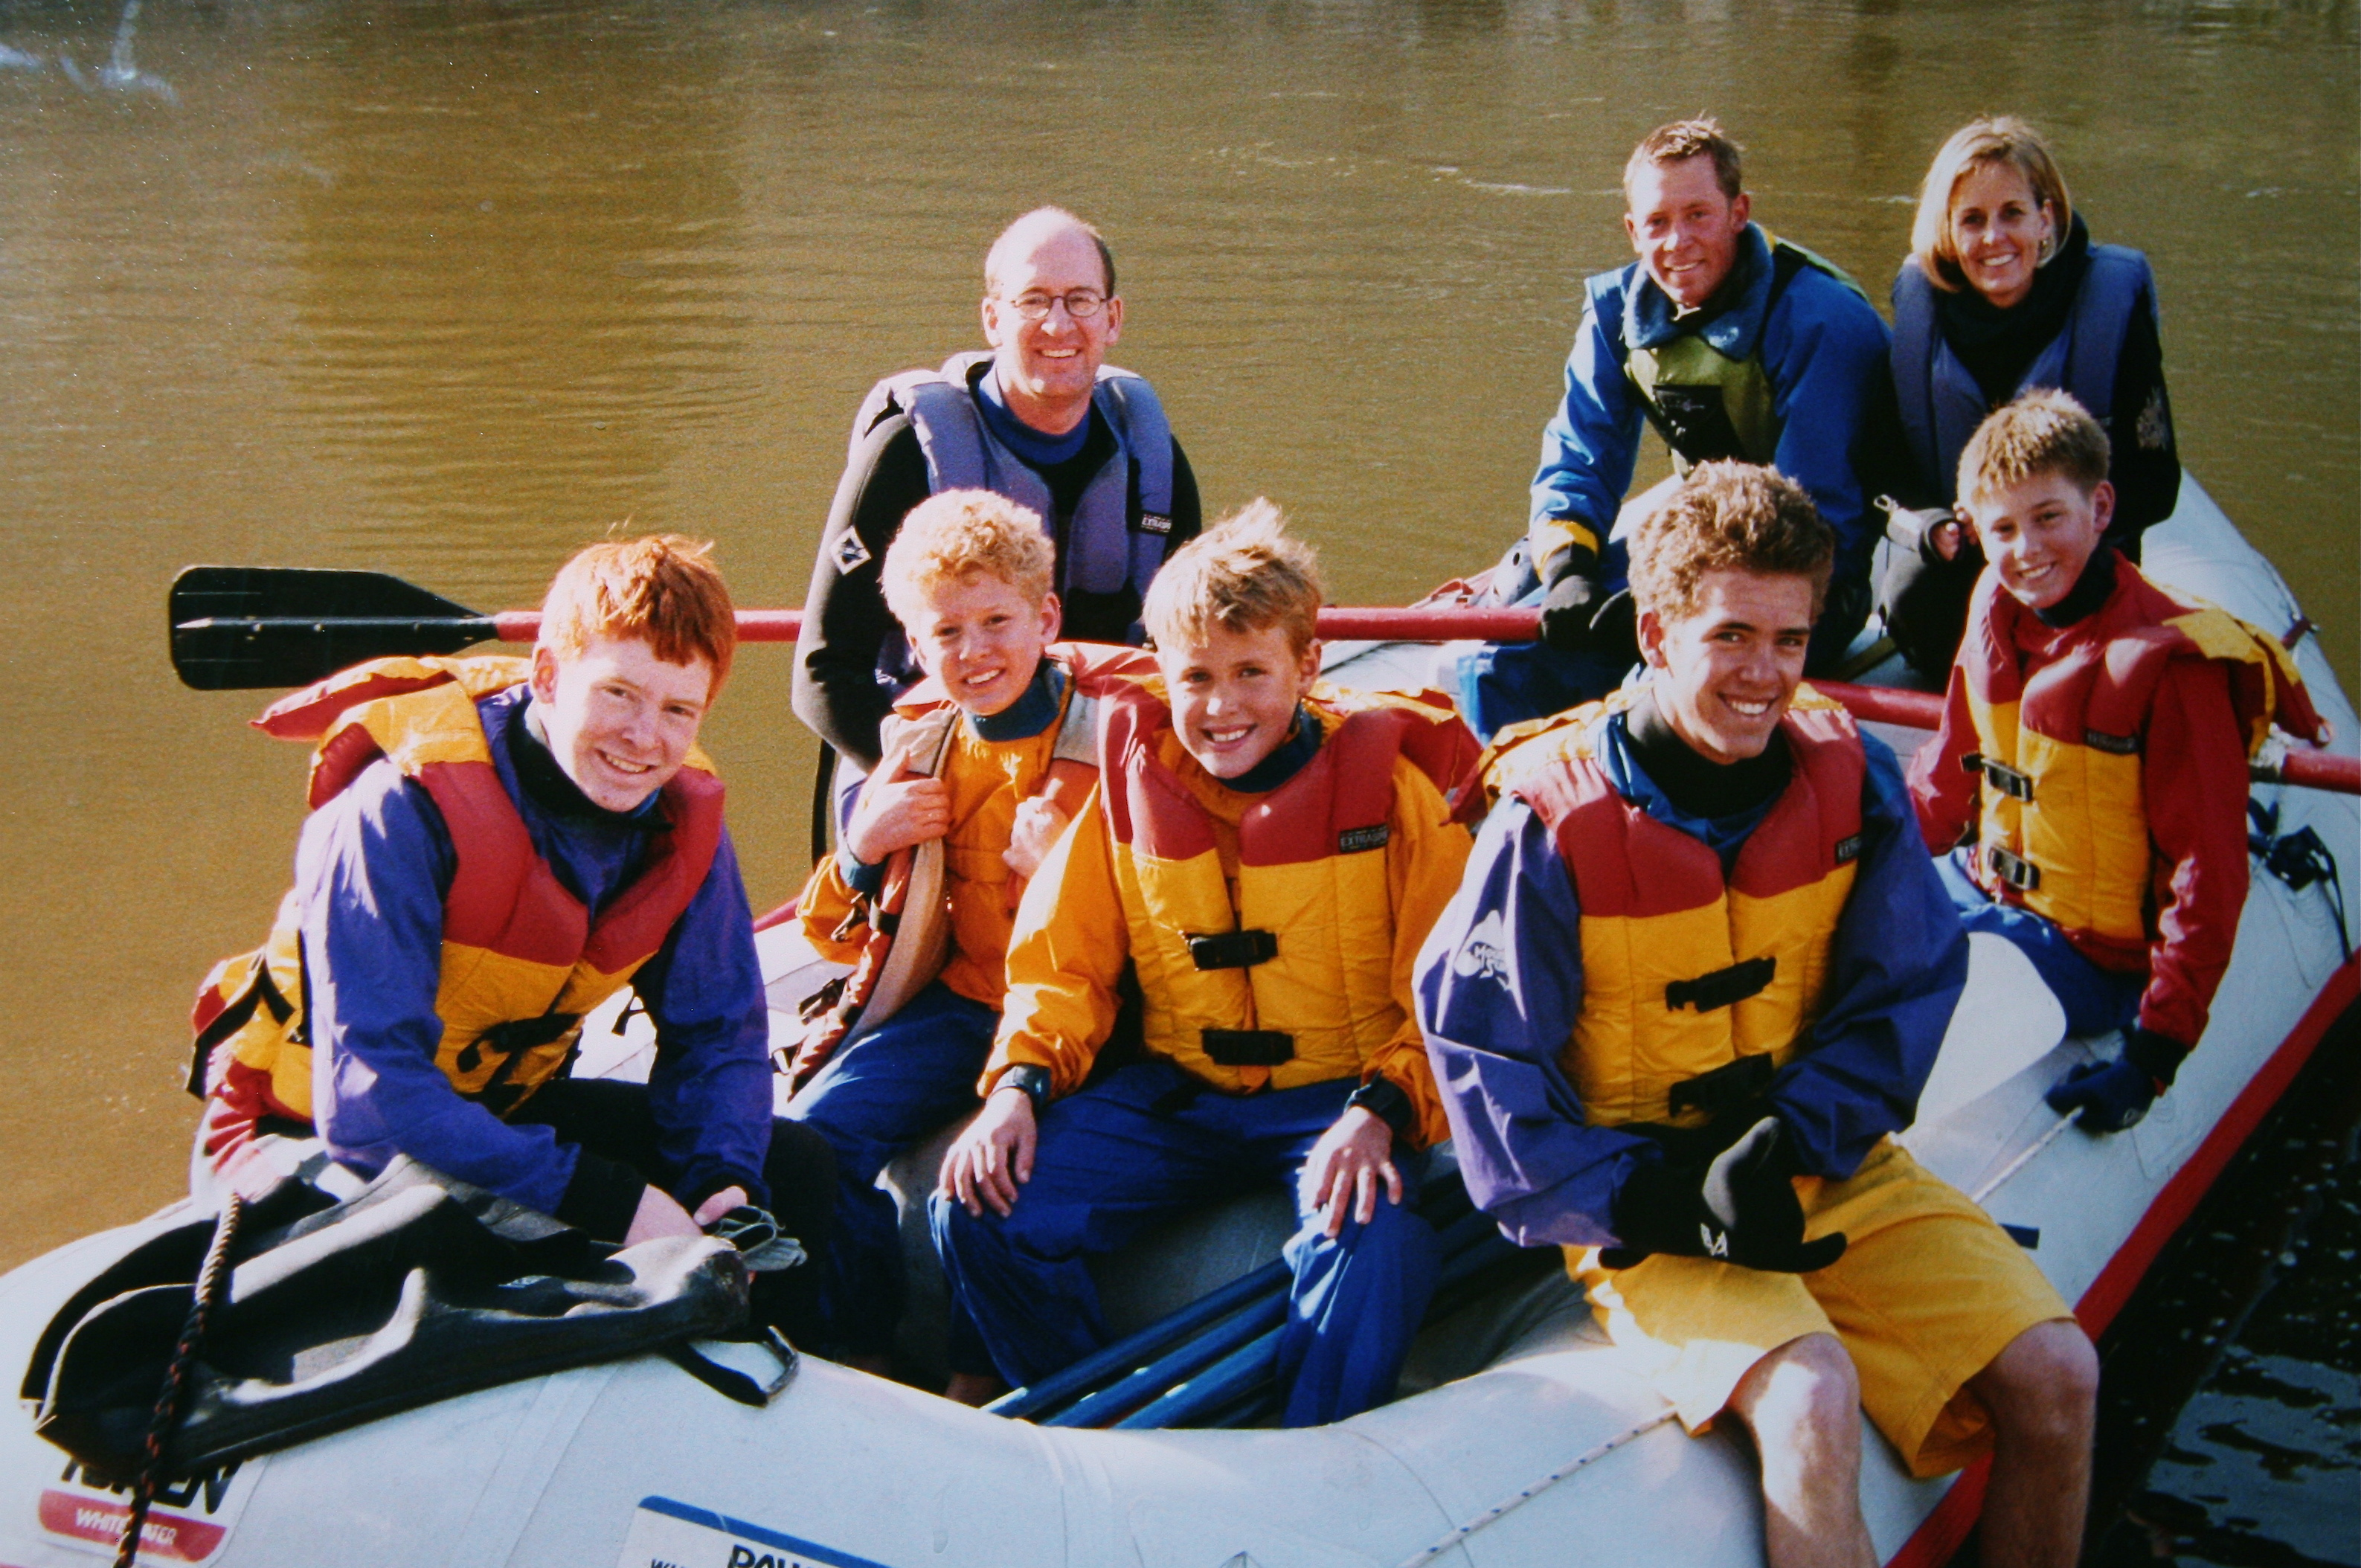 The Featherstone Family river-rafting together.